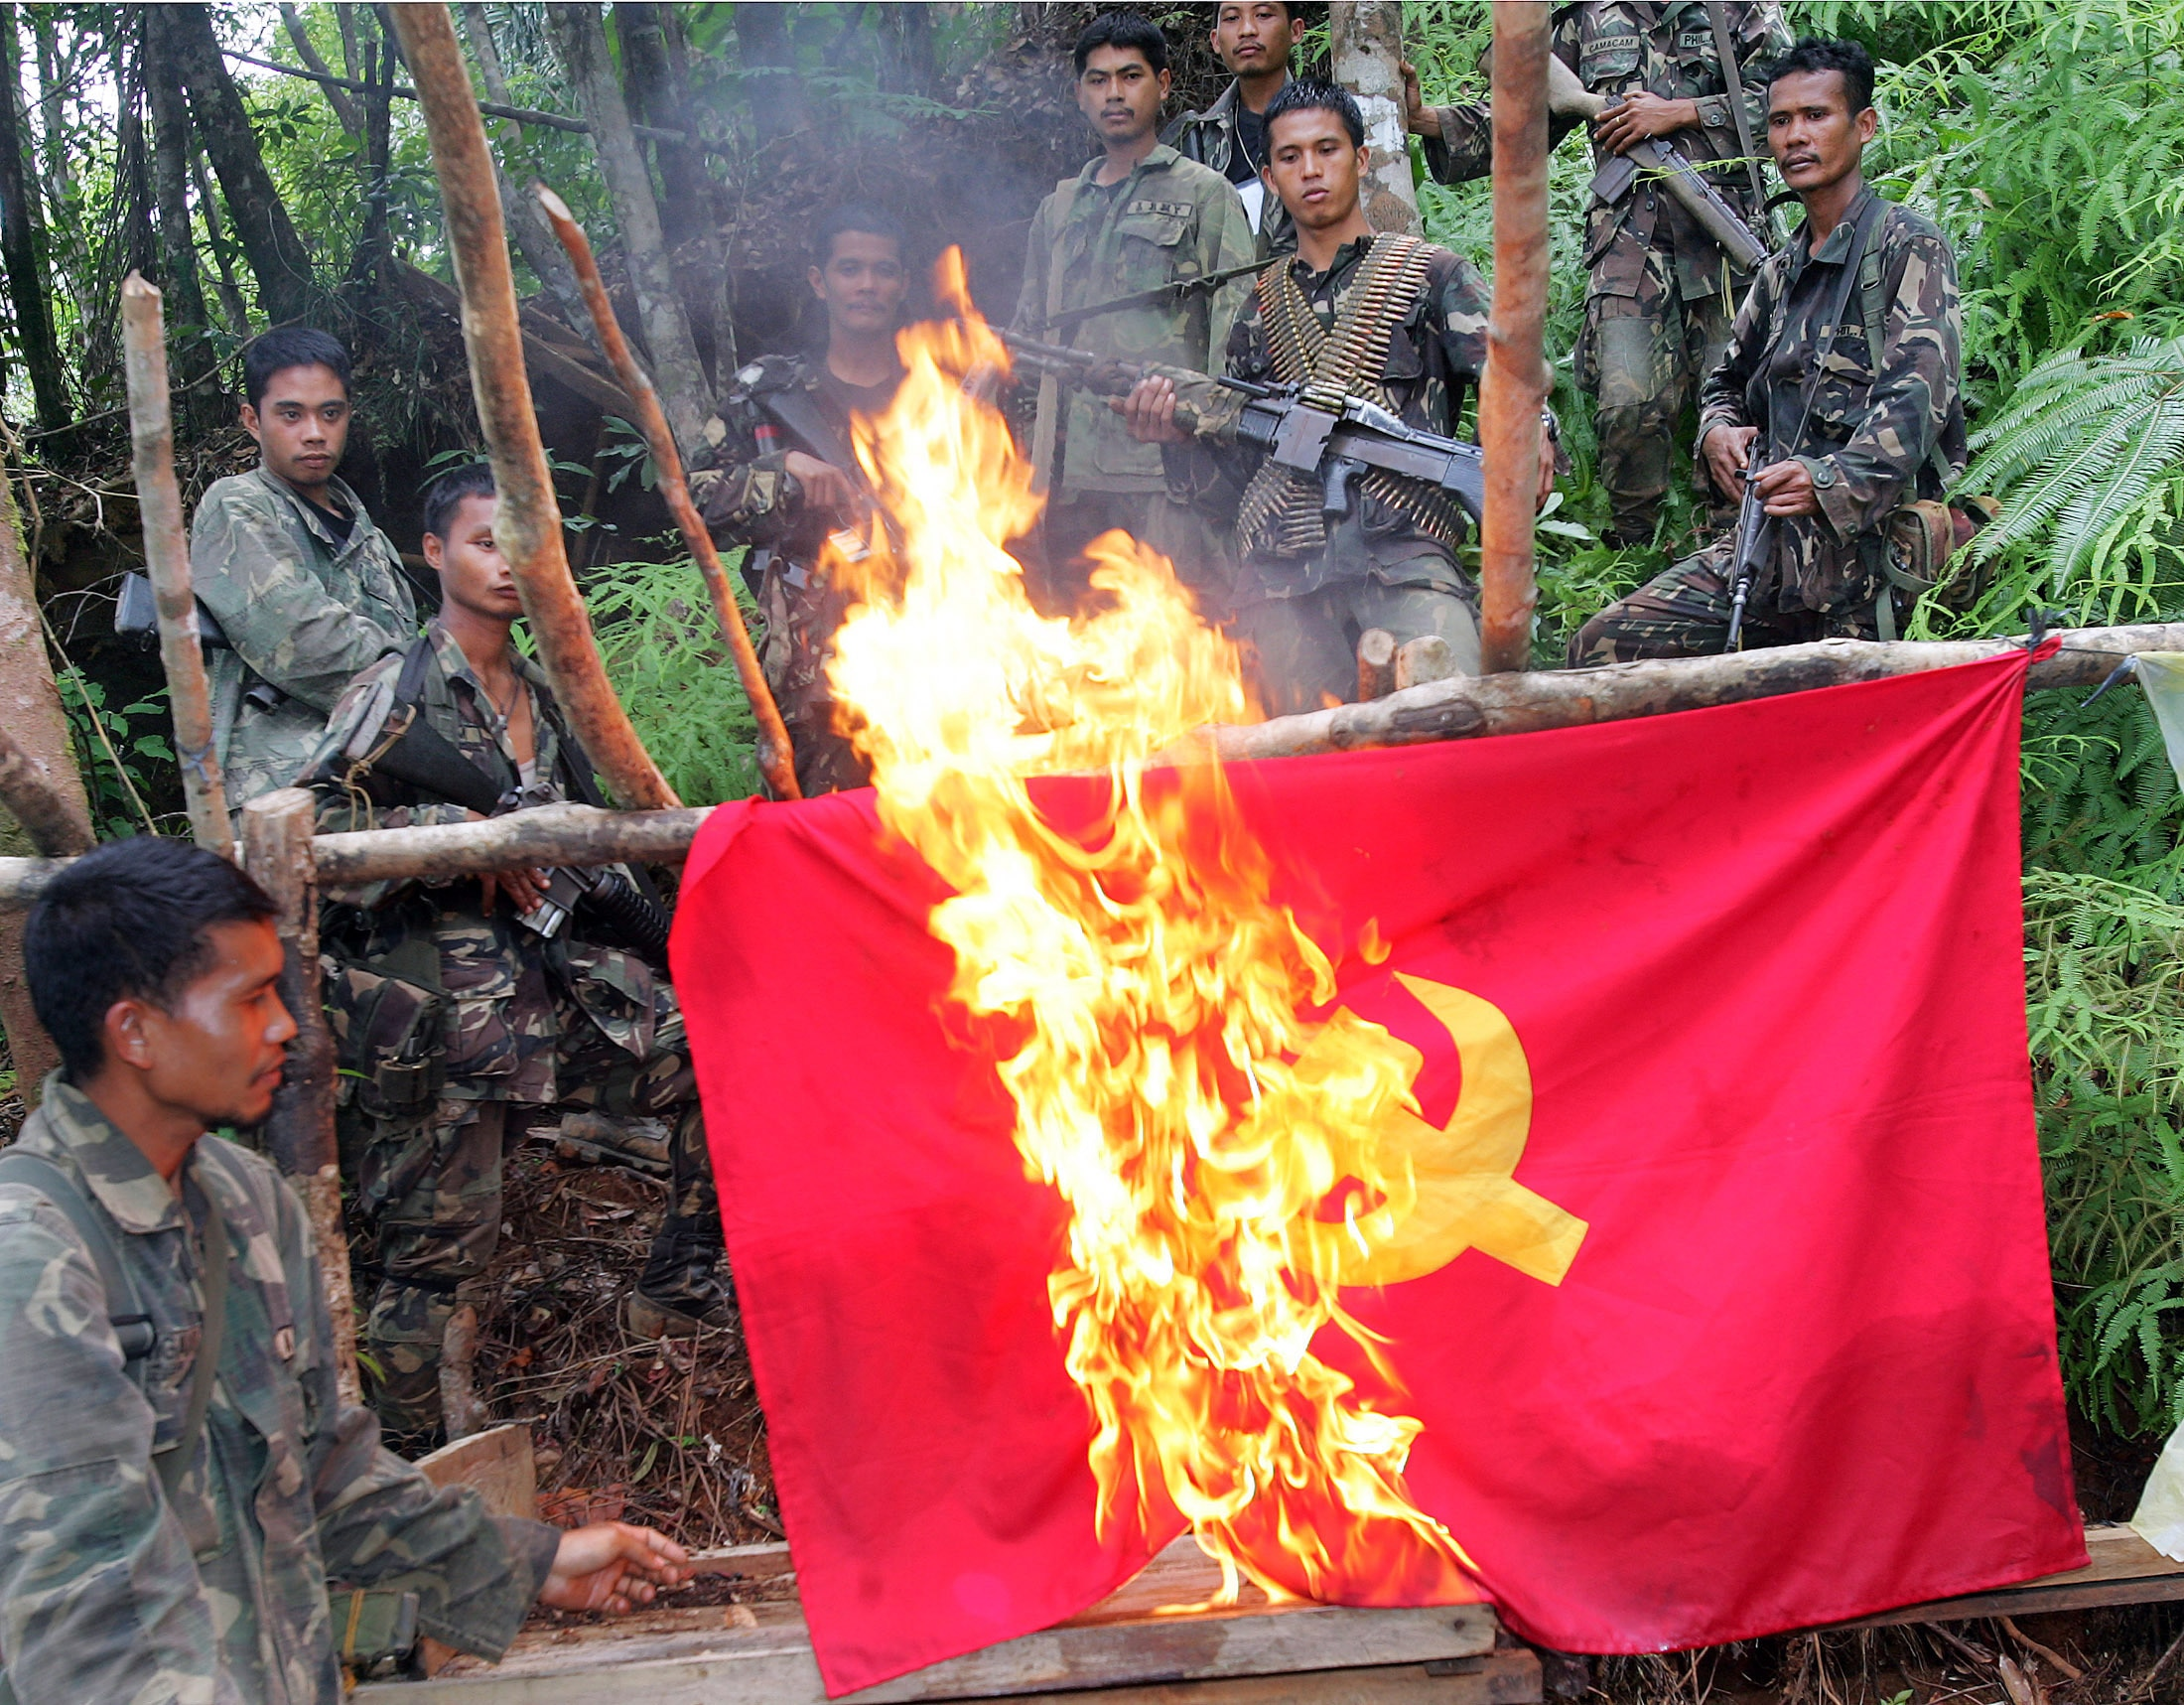 Philippine Army soldiers watch as they burn a communist flag in an abandoned rebel camp in the mountainous area of General Nakar.